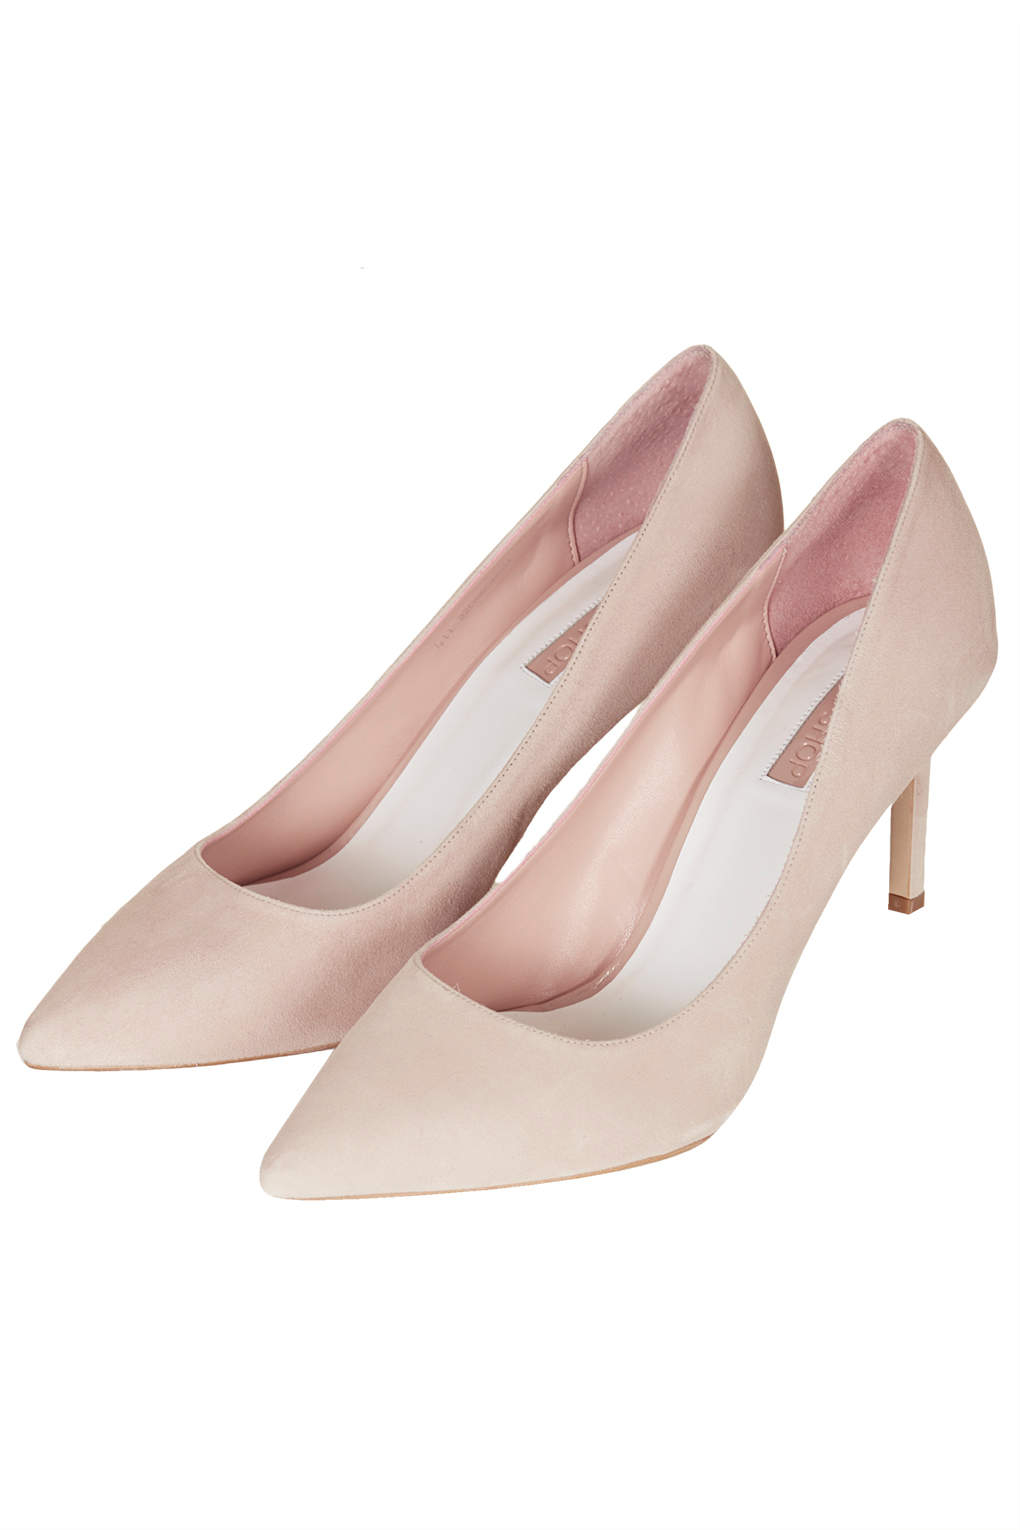 Lyst - Topshop Womens Golden Mid Heel Court Shoes Nude in Pink